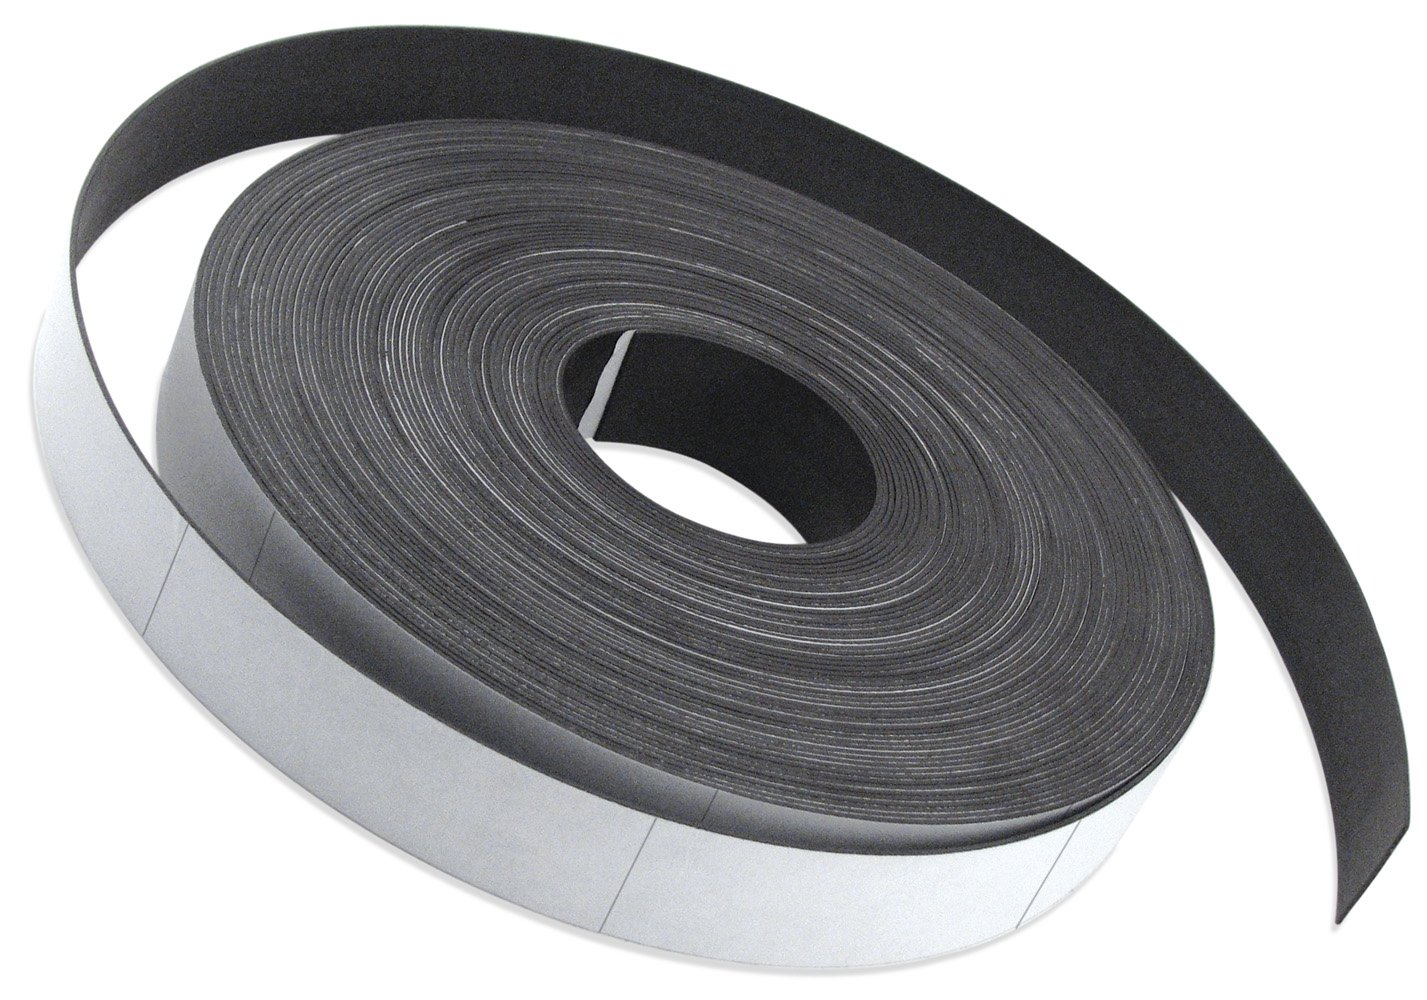 Flexible Magnet Strip with White Vinyl Coating, 1/32' Thick, 1' Height, 50 Feet, Scored Every 6', 1 Roll with 98-1' x 6' pieces 1/32 Thick 1 Height Scored Every 6 1 Roll with 98-1 x 6 pieces Master Magnetics Inc. ZGN03040W/WKS50S6